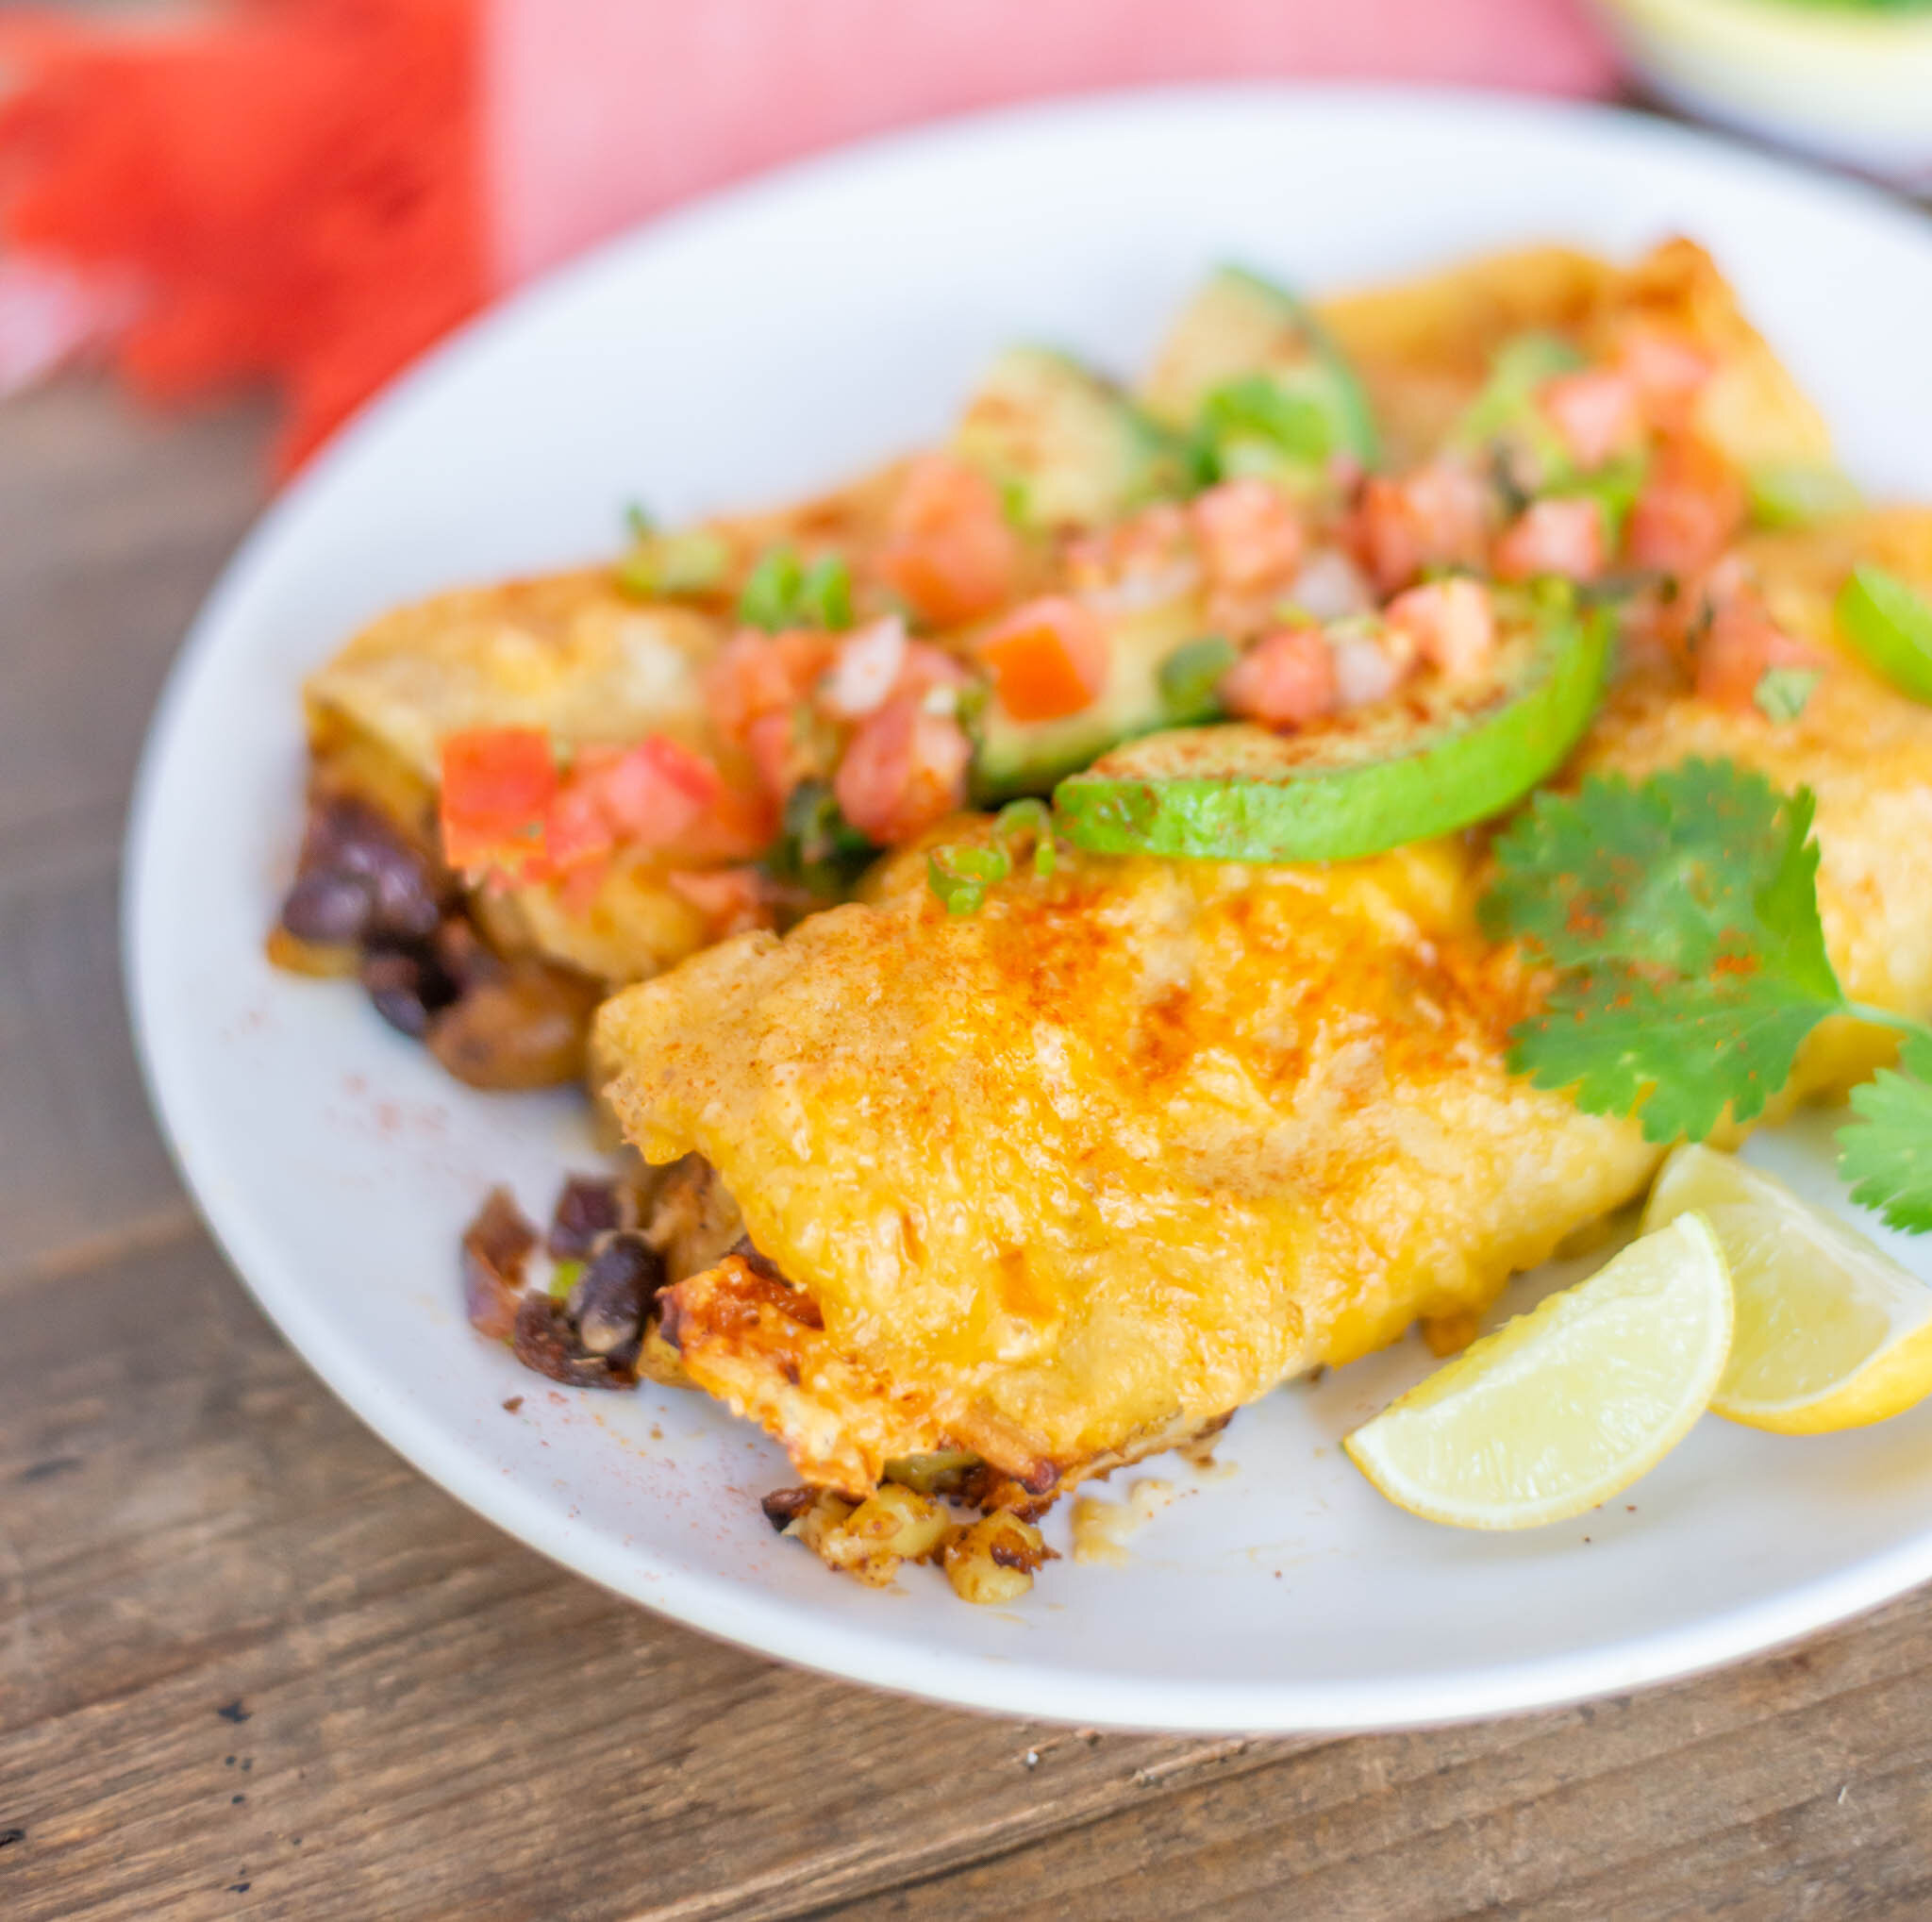 Mixed_And_Measured_Cripsy_Smashed_Potato_Enchilas-11.jpg